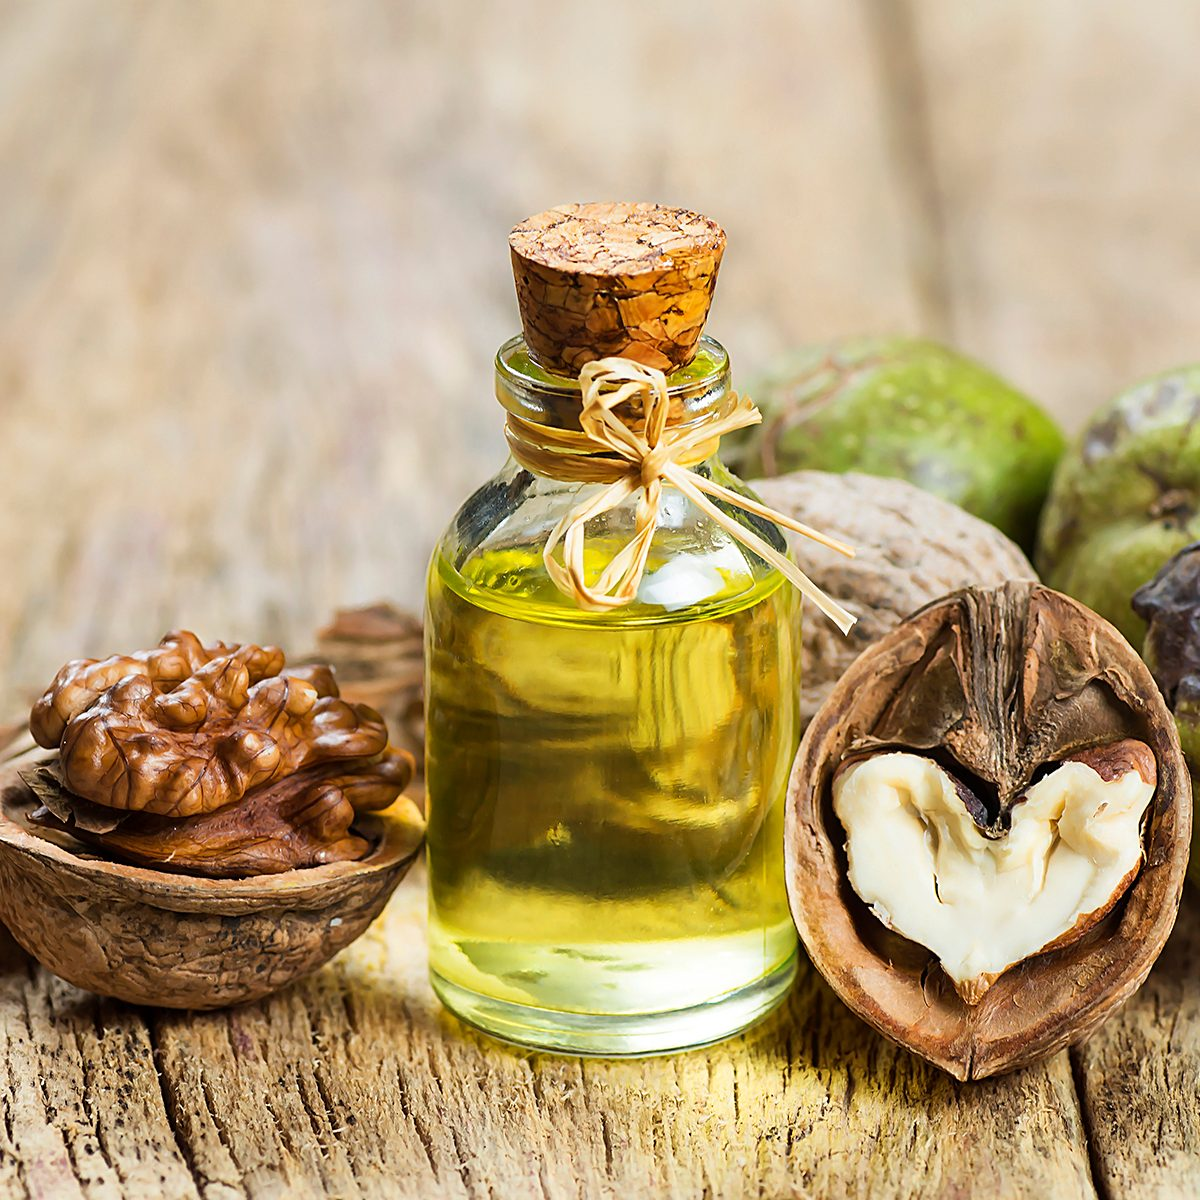 healthy oils Walnut oil in glass of bottle, whole big peeled walnut kernel with thin shell on wooden background. healthy food for brain. Fresh walnuts background nut concept